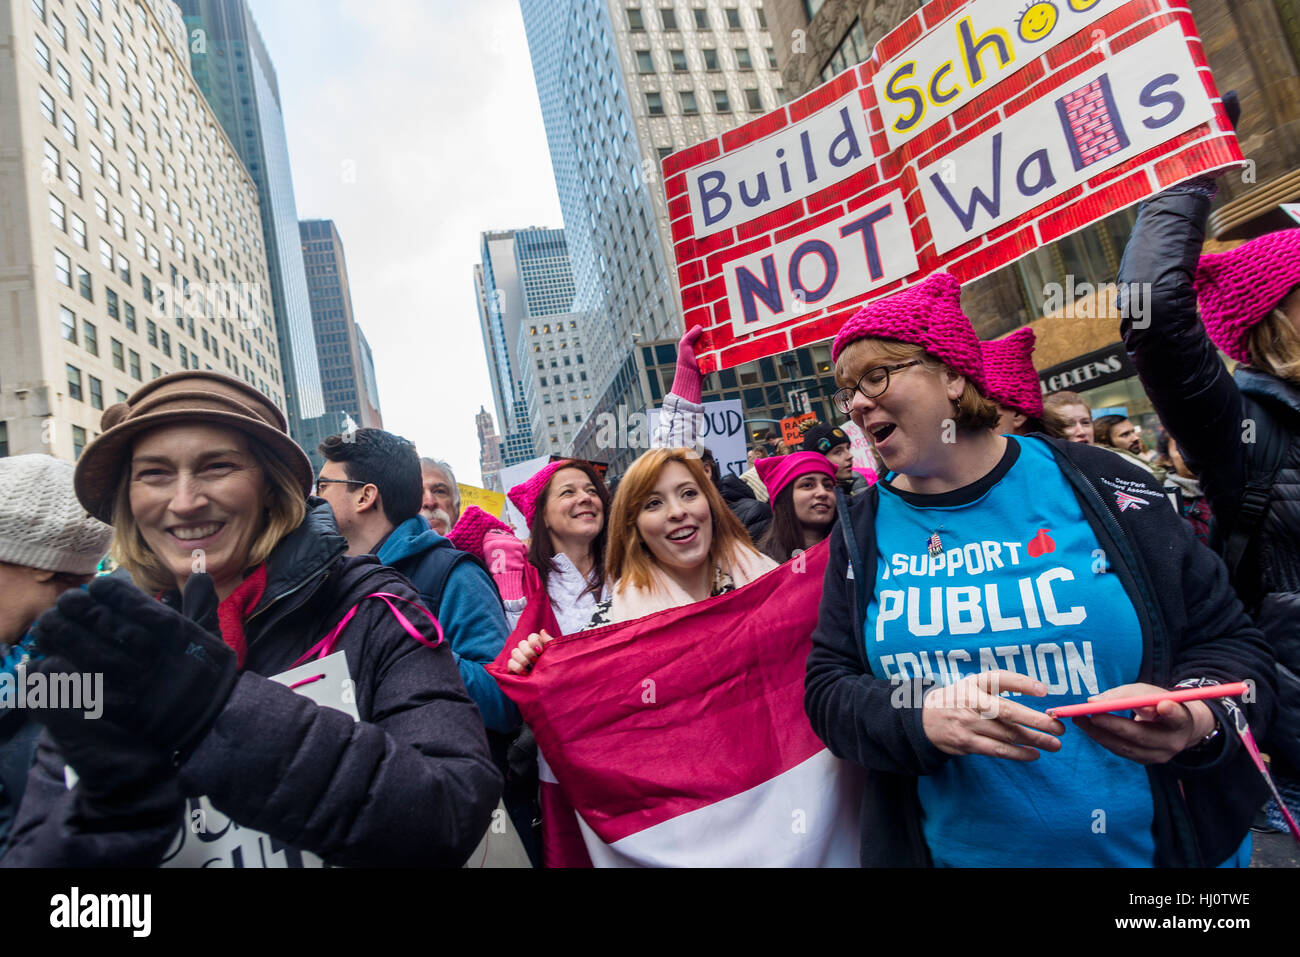 New York, USA 21 Jan 2017 - An estimated 400 to 500 thousand protesters marched from Dag Hammarskjöld Plaza, - Stock Image